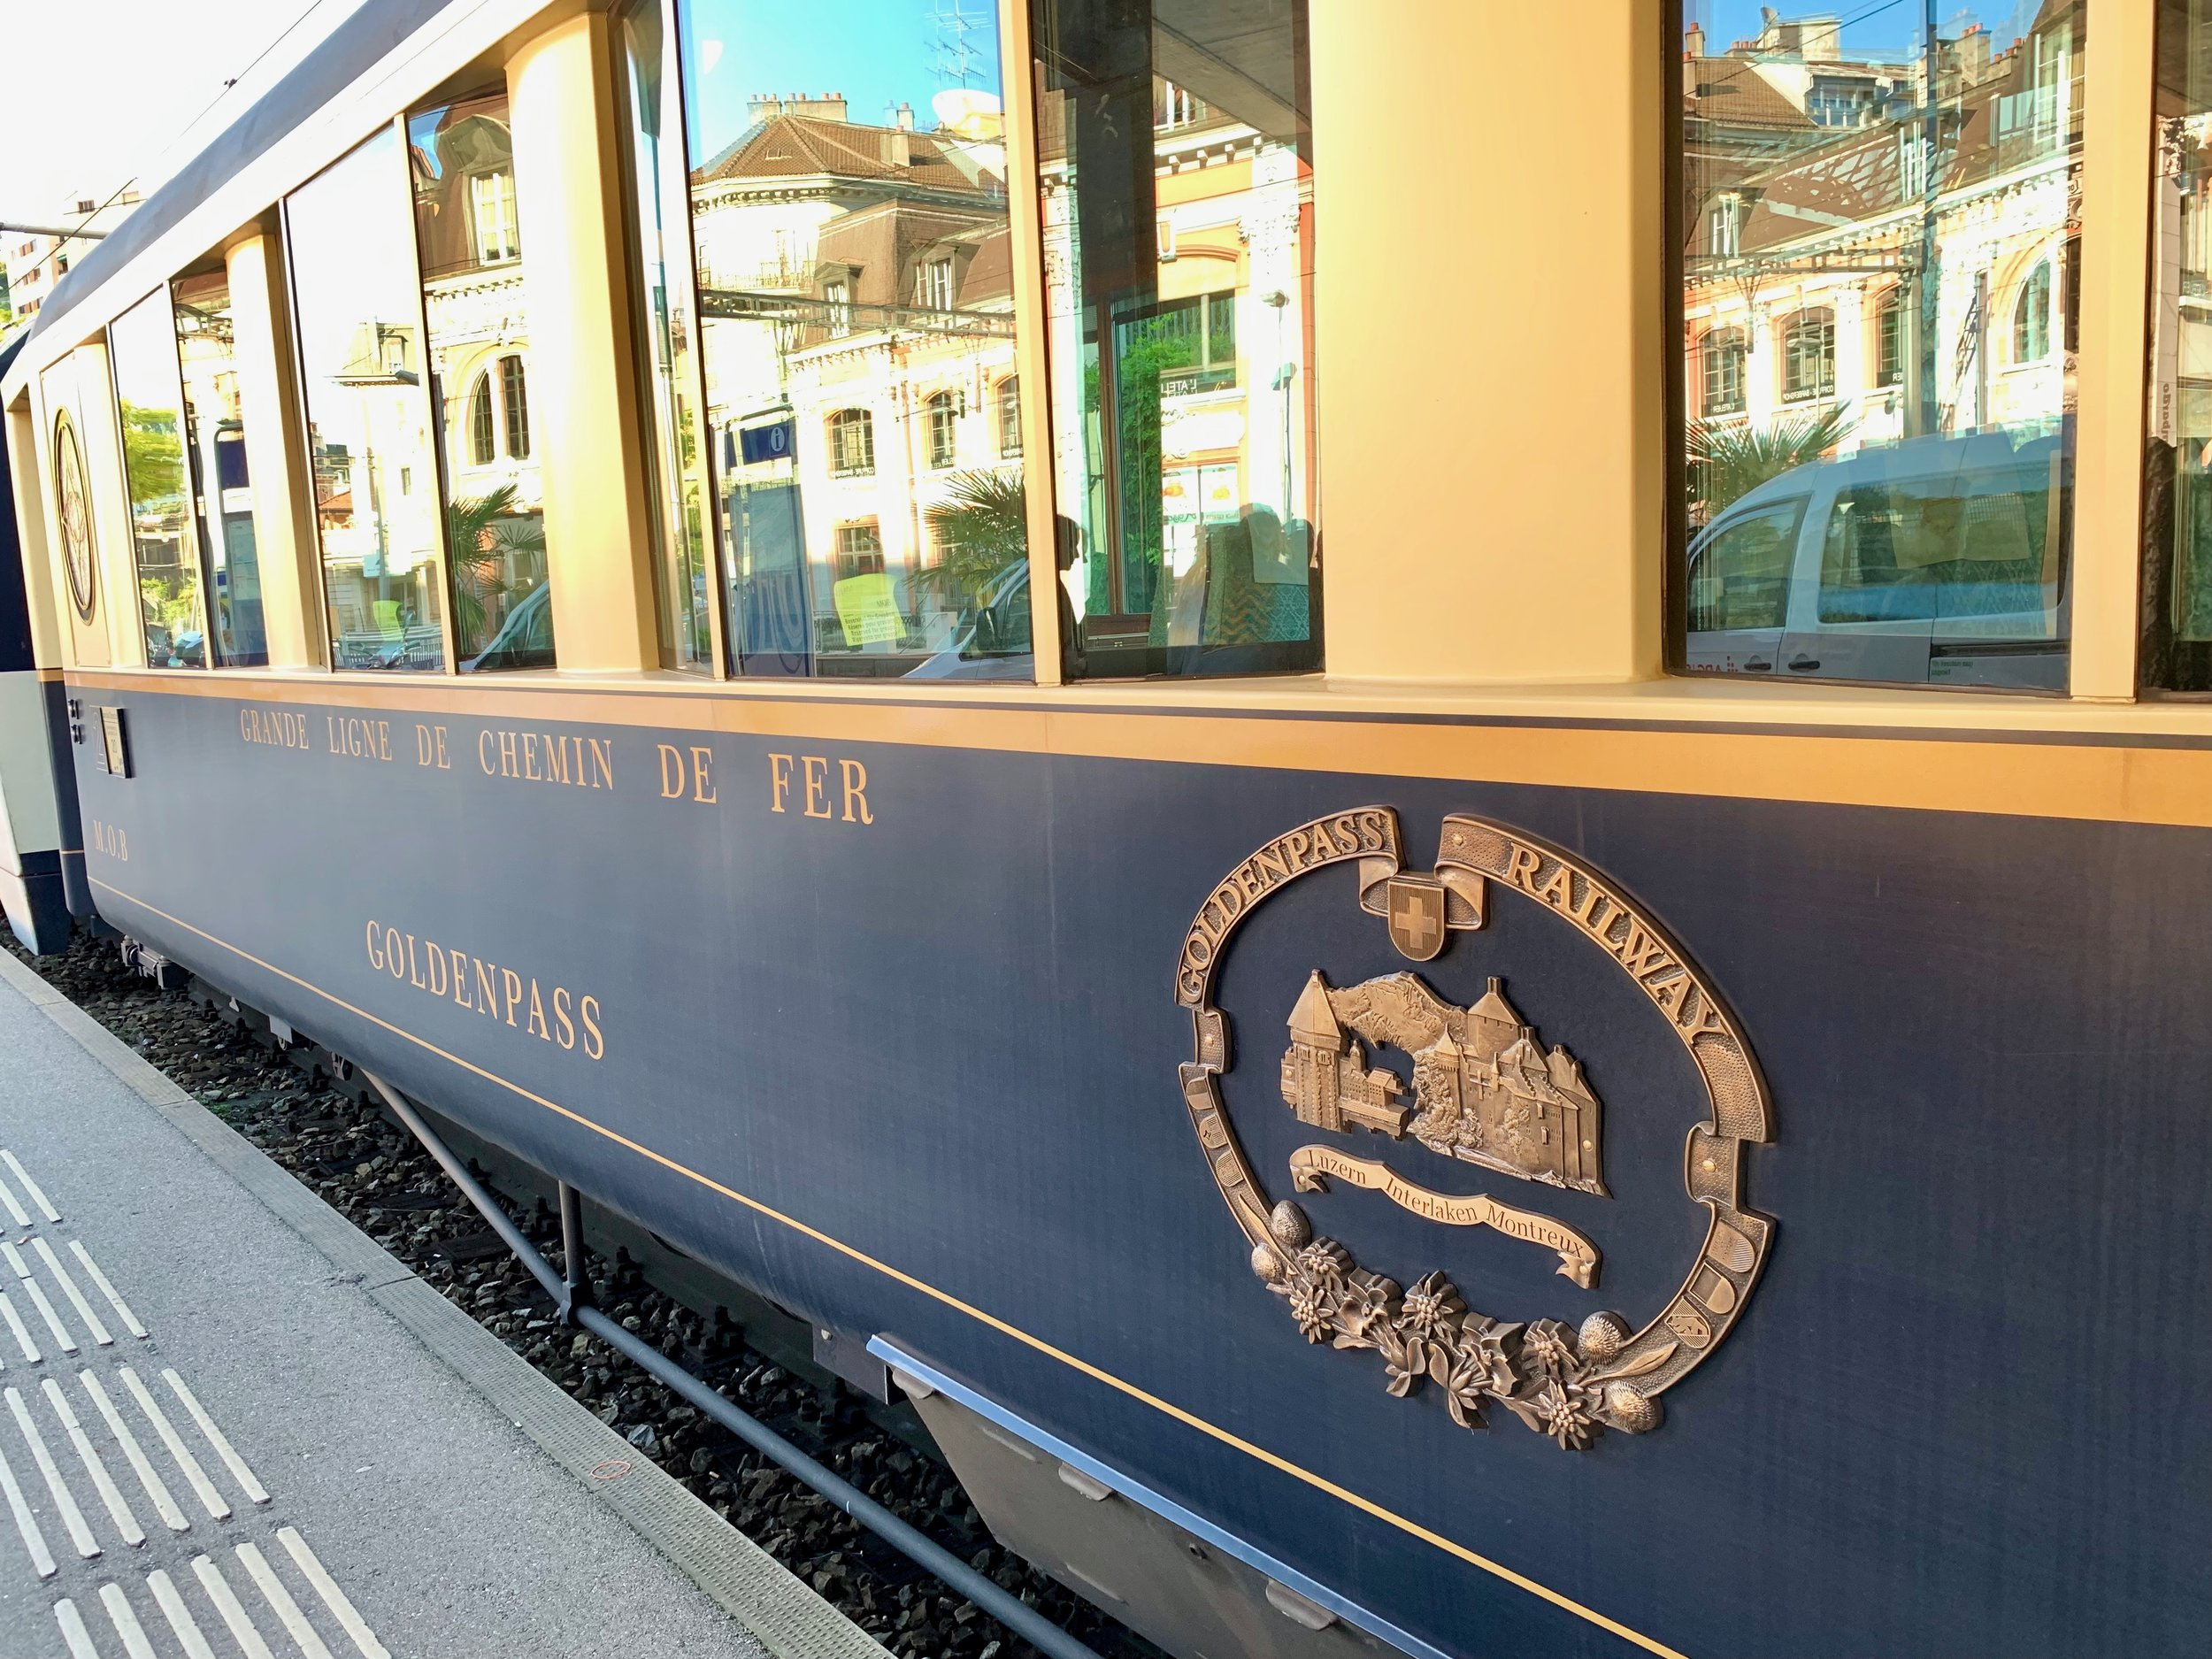 The Belle Epoque train car waiting to take us on The Chocolate Tour. Montreux, Switzerland. June 3, 2019.